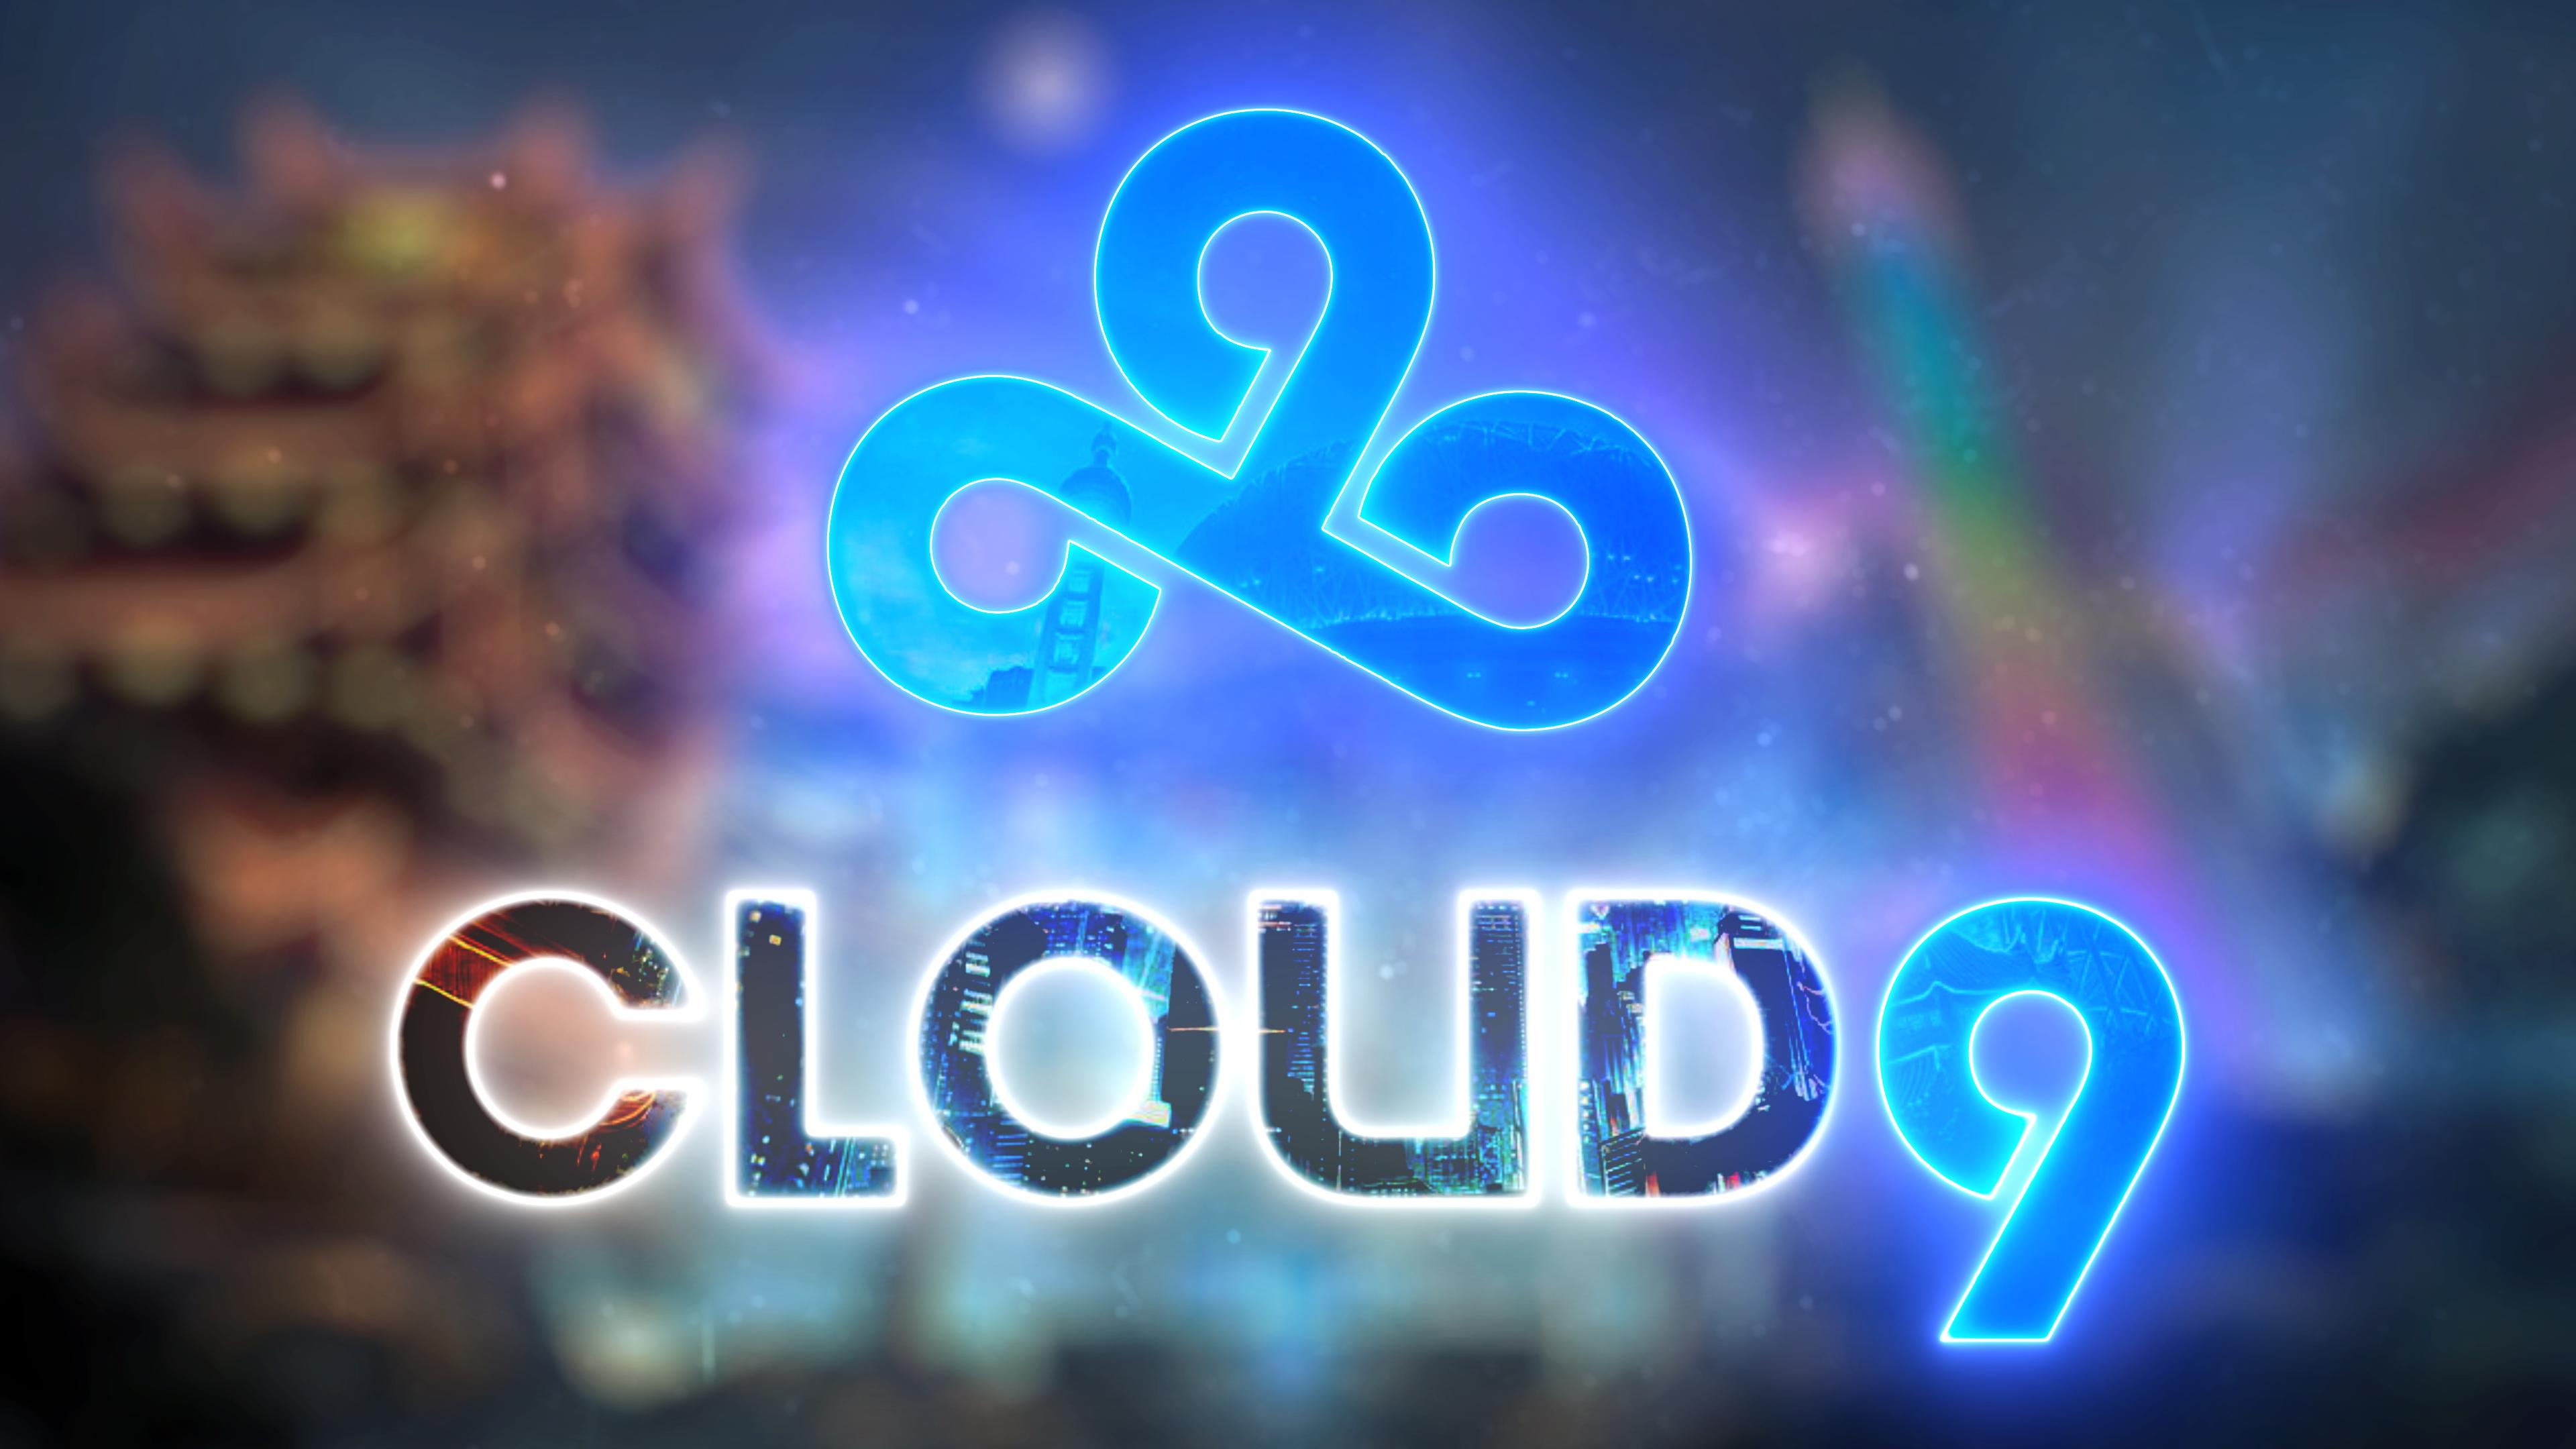 3840x2160 I was advised by r/leagueoflegends to post my Cloud 9 wallpaper here ...